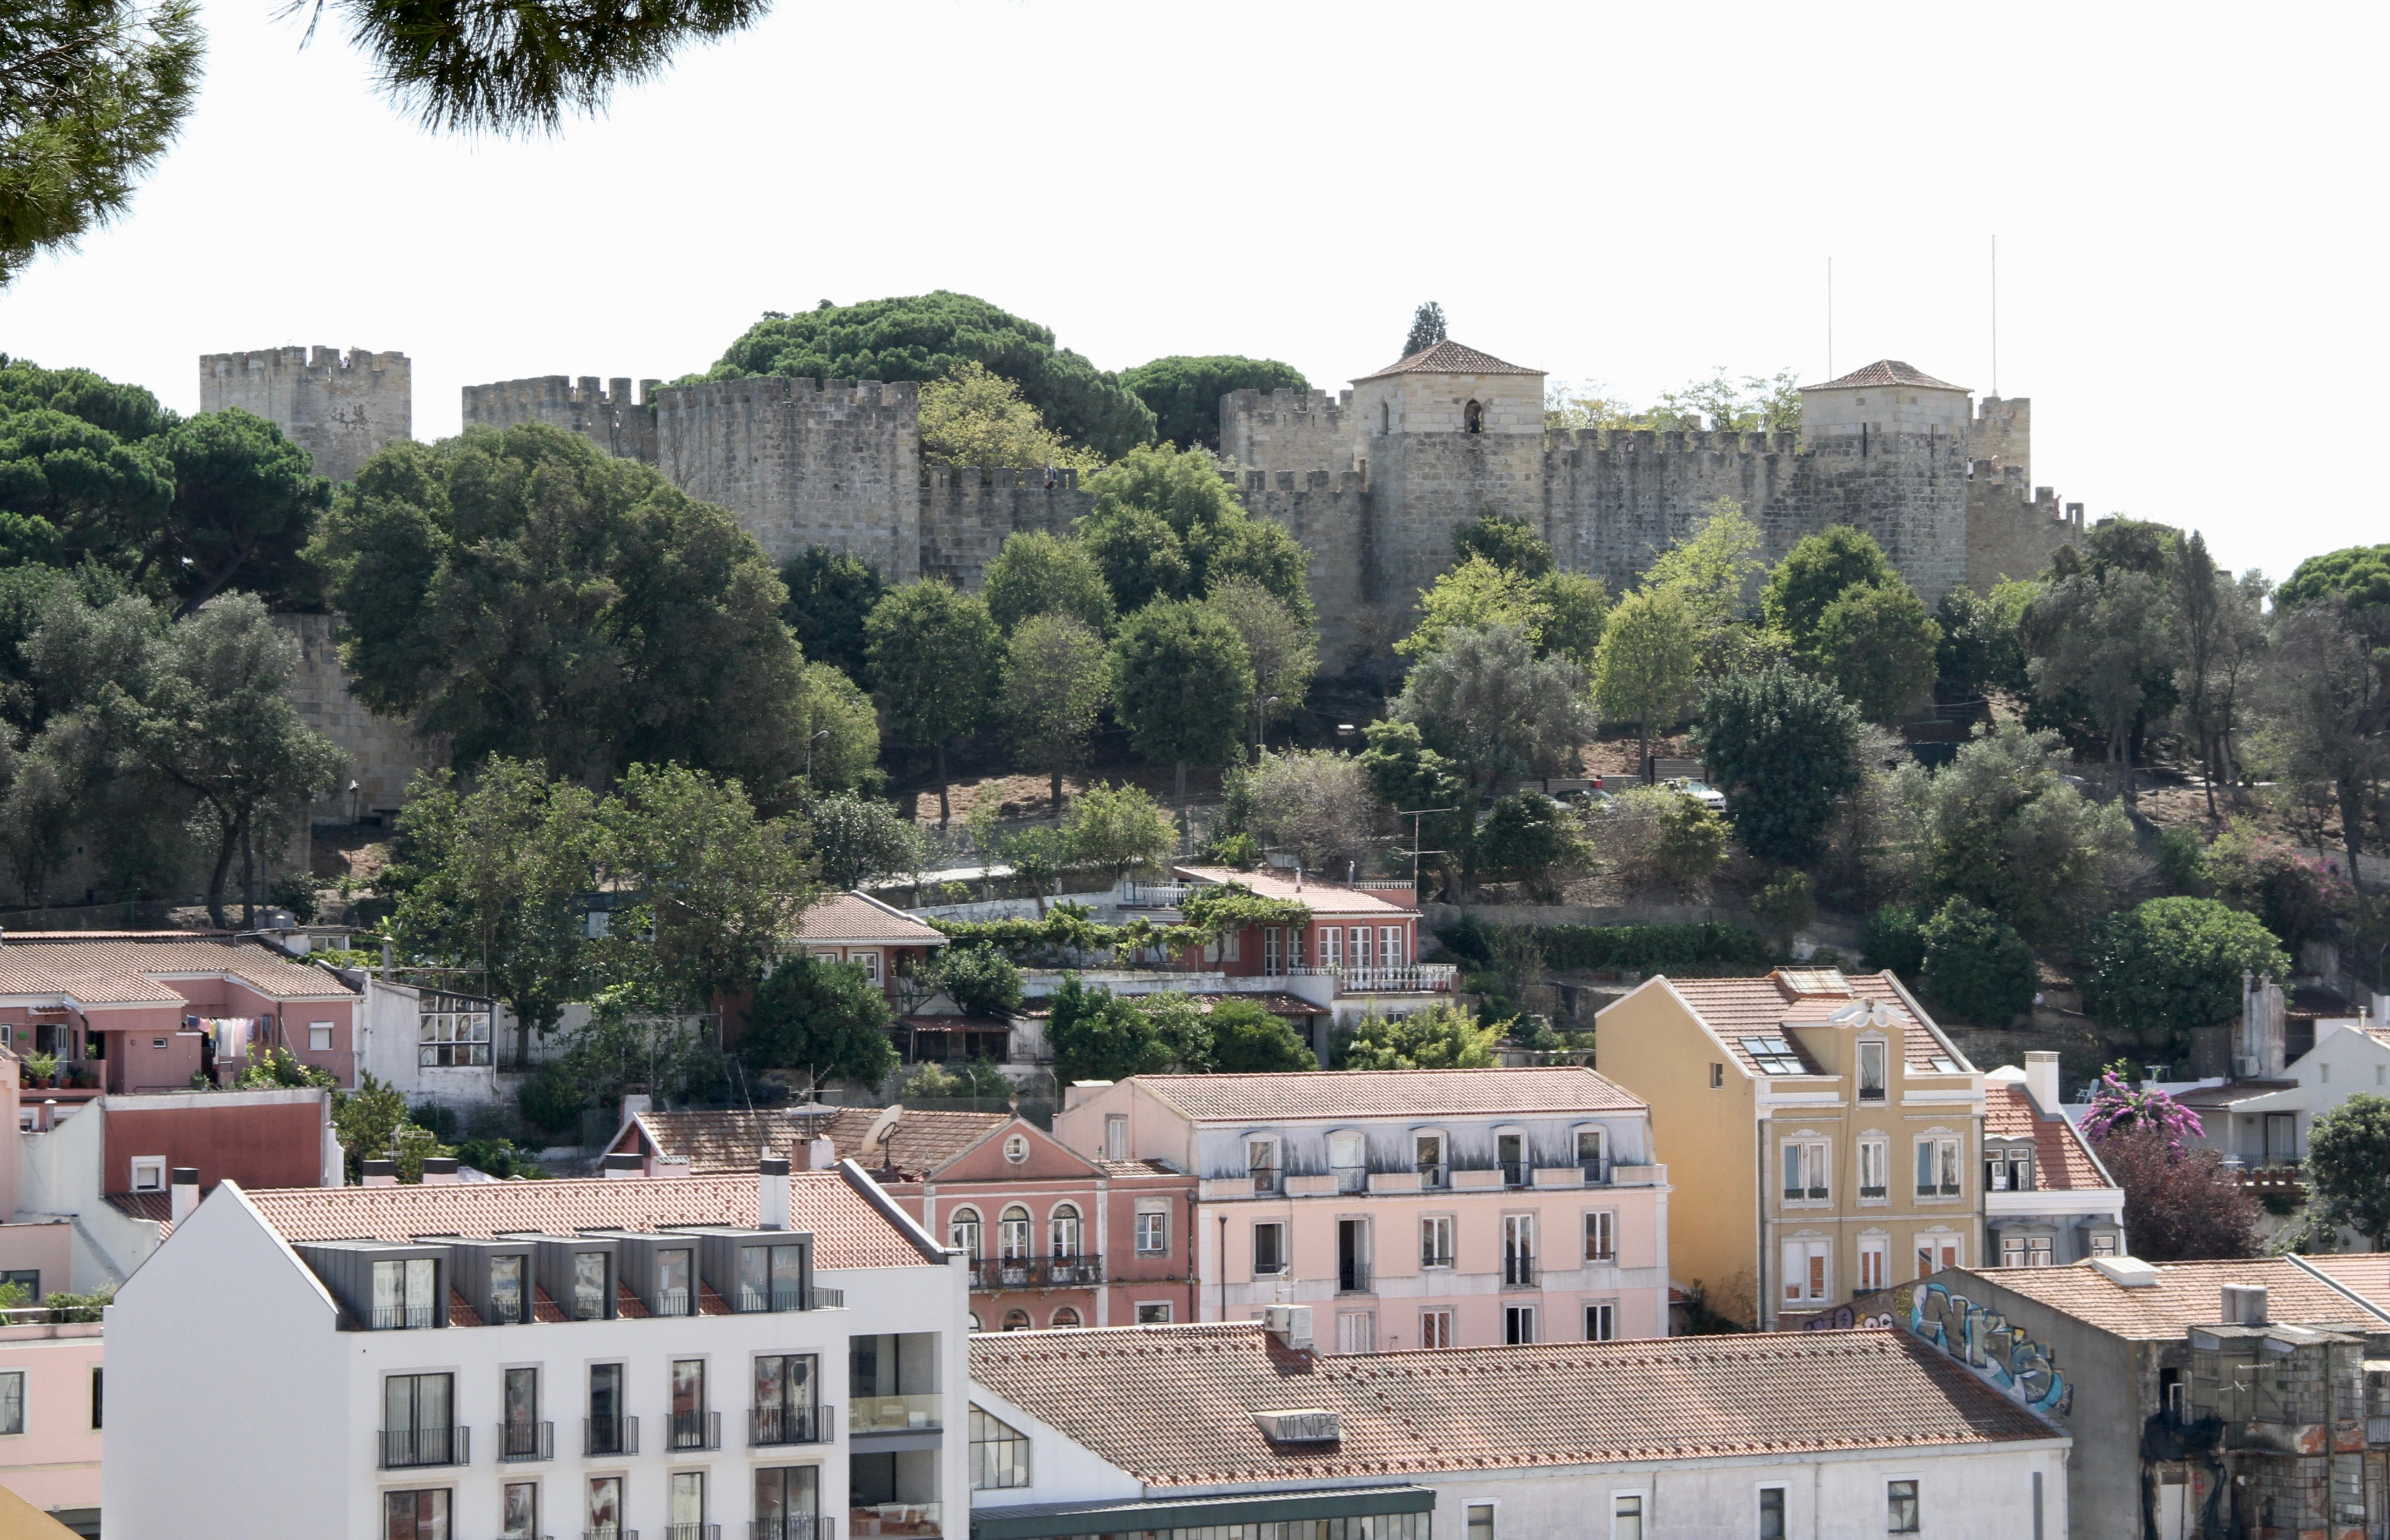 The St. George Castle (Castelo de S. Jorge) sits atop a hill overlooking central Lisbon, Portugal, on Sunday, Sept. 15, 2019.